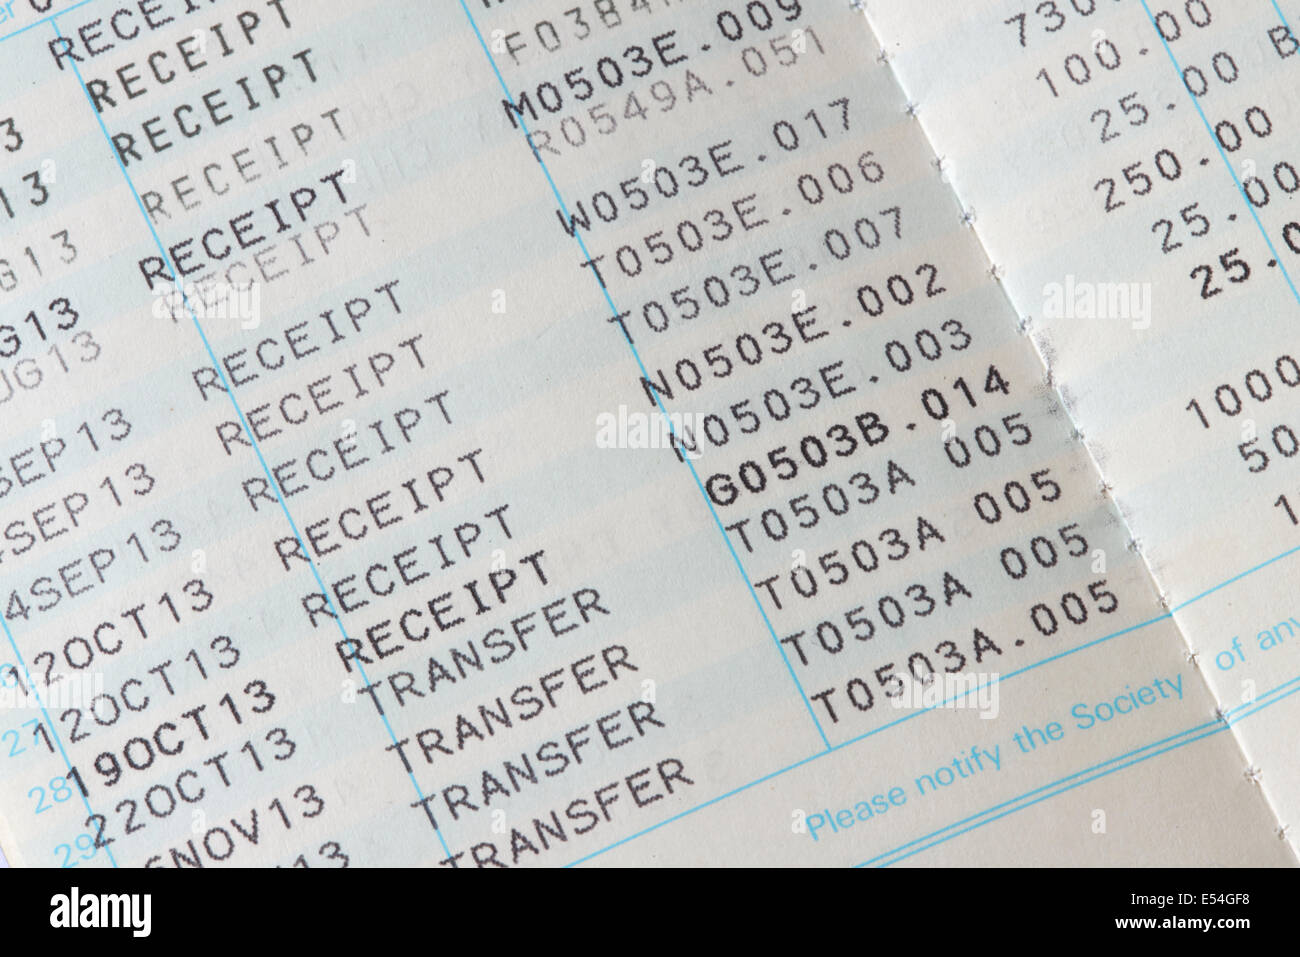 Inside Pages Showing Receipts Of Money In A Building Society Savings Book - Stock Image